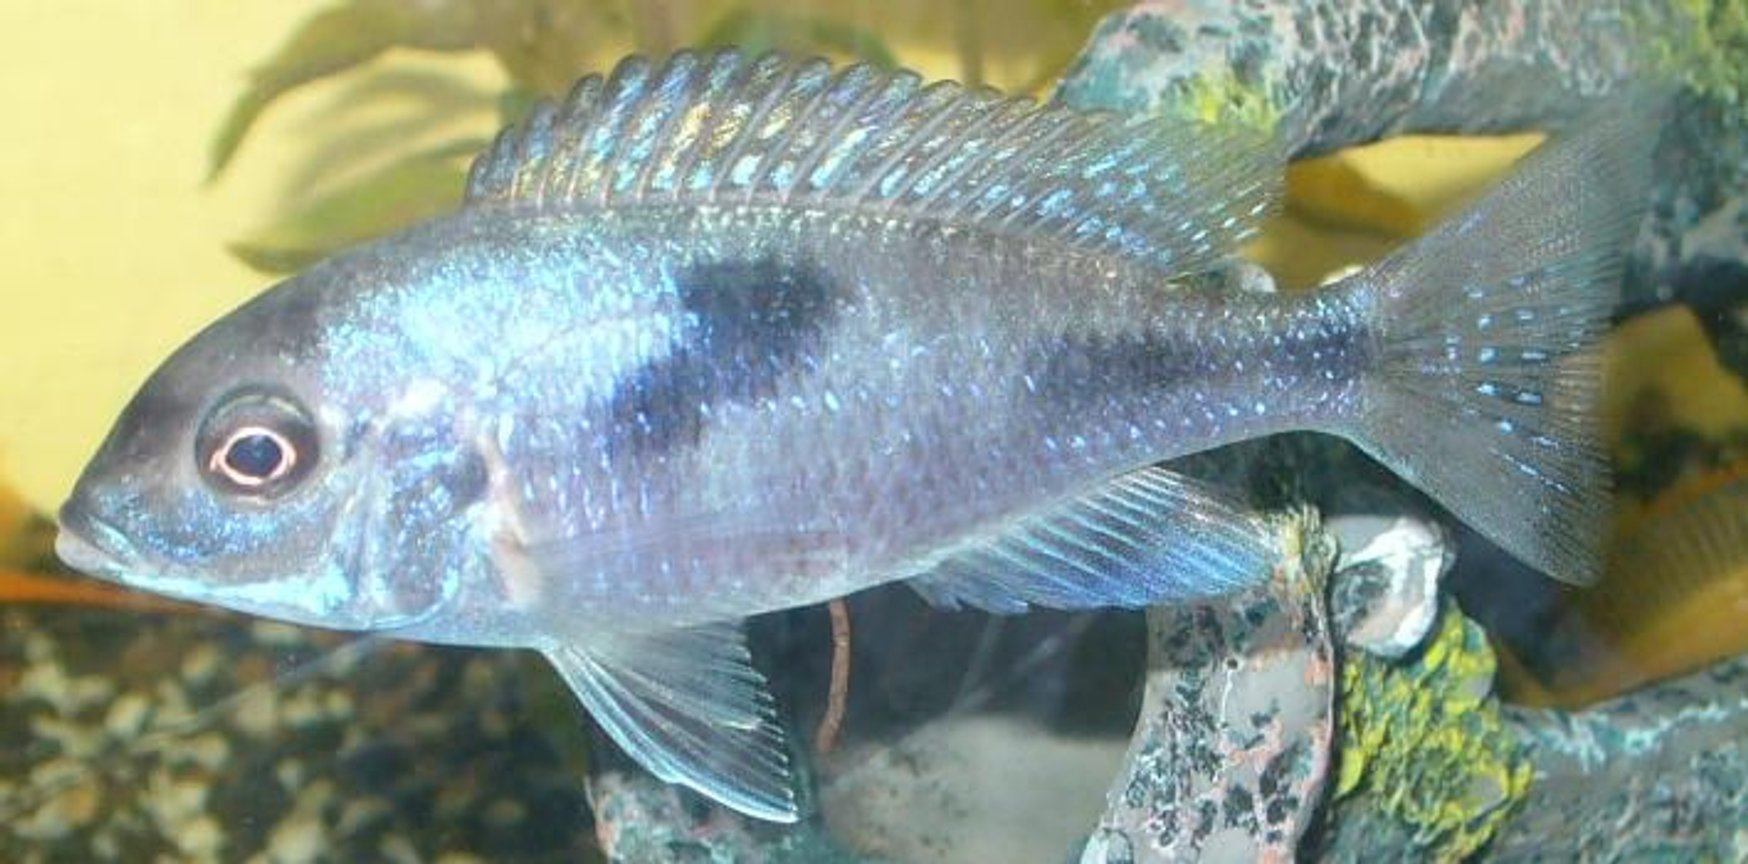 freshwater fish - cyrtocara moorii - blue dolphin cichlid stocking in 100 gallons tank - Blue Dolphin. Love the colour in them